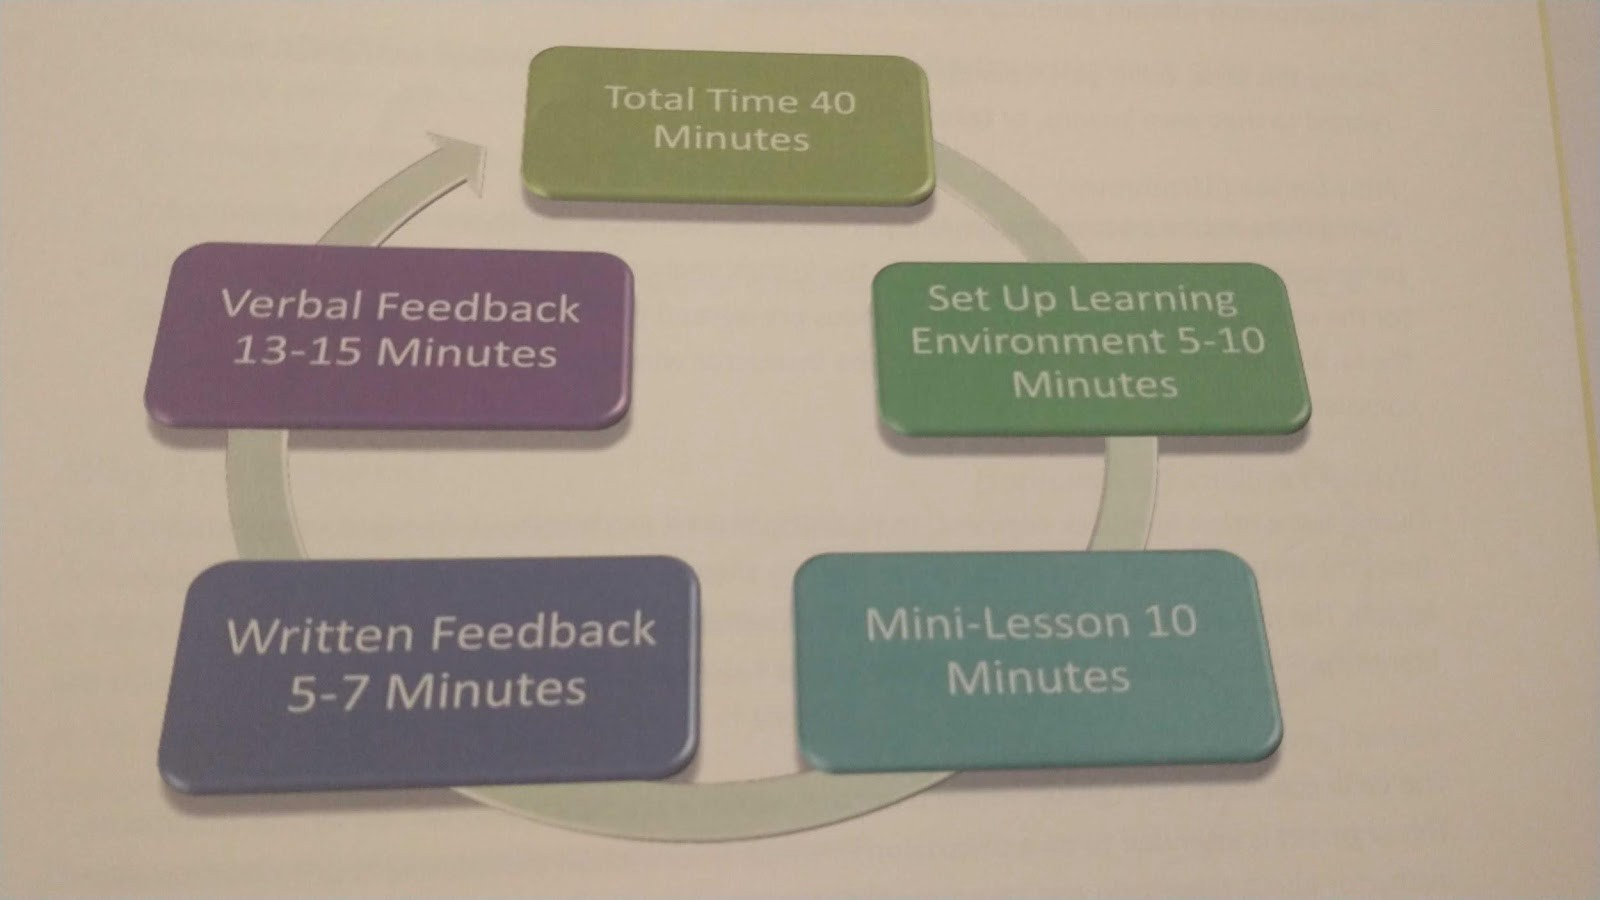 The 10 minute mini-lesson model broken down into steps. Room given for written and verbal feedback, and to scaffold learning.